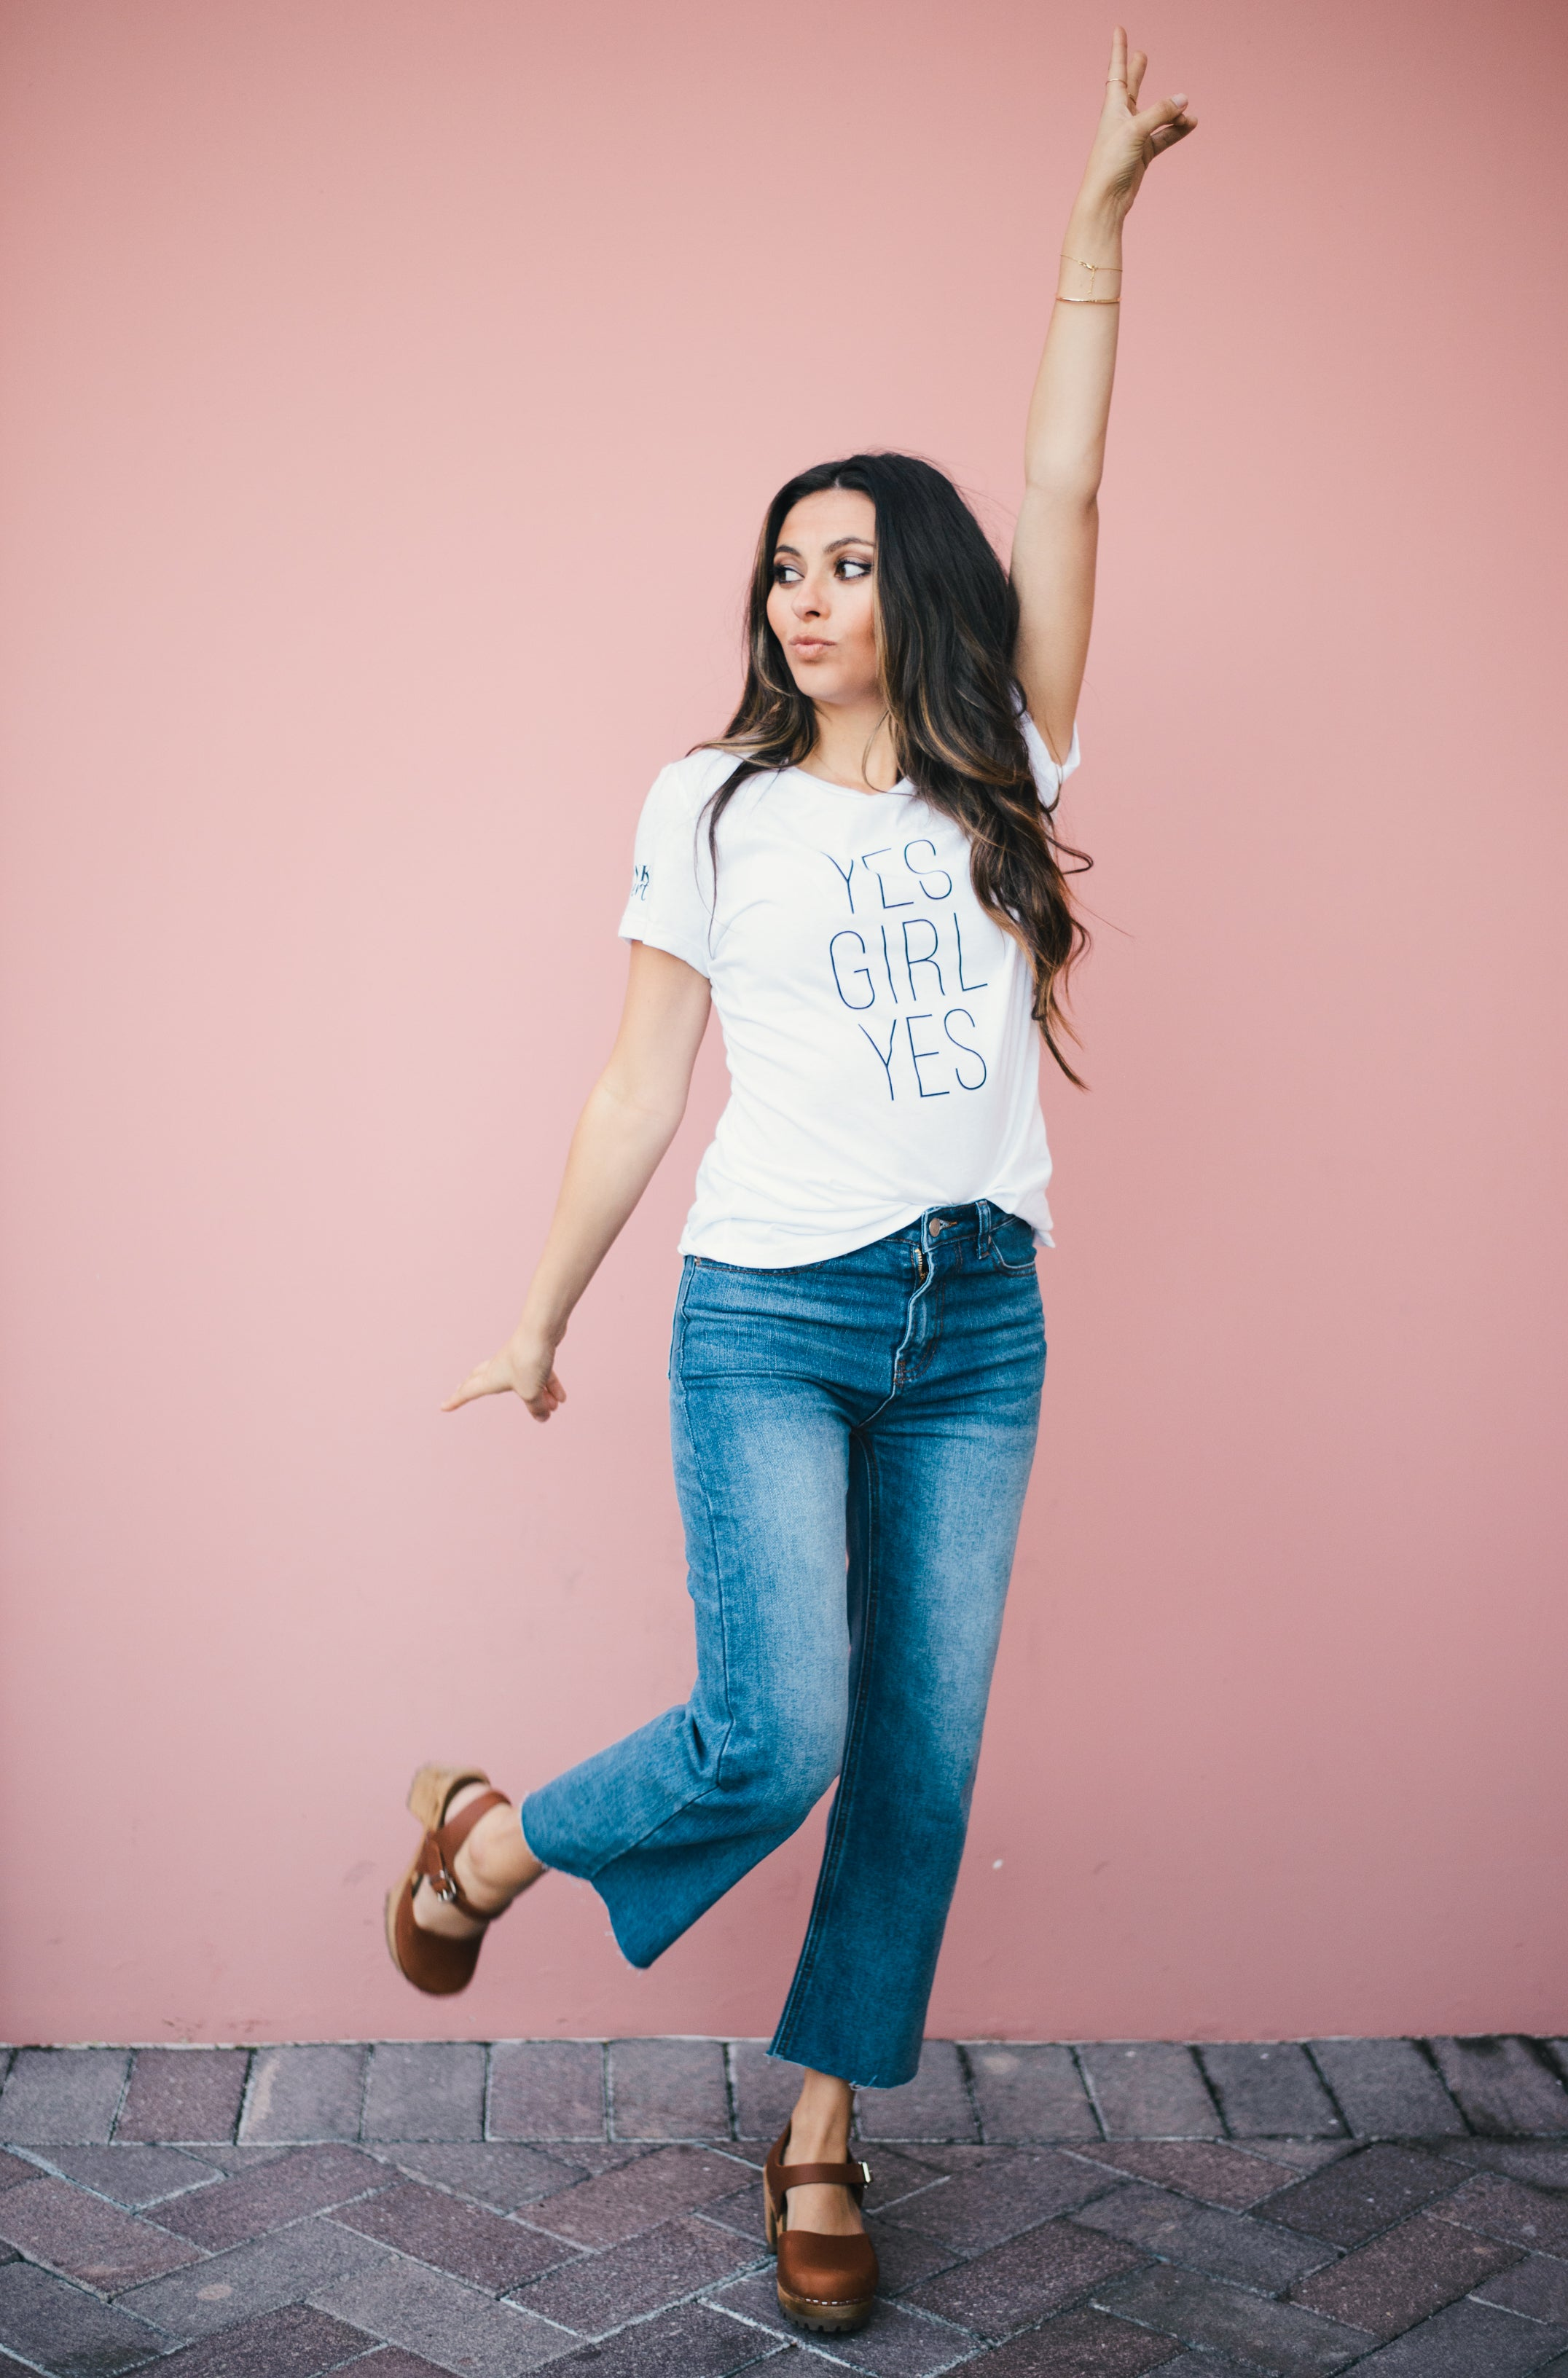 YES GIRL YES GRAPHIC TEE IN WHITE